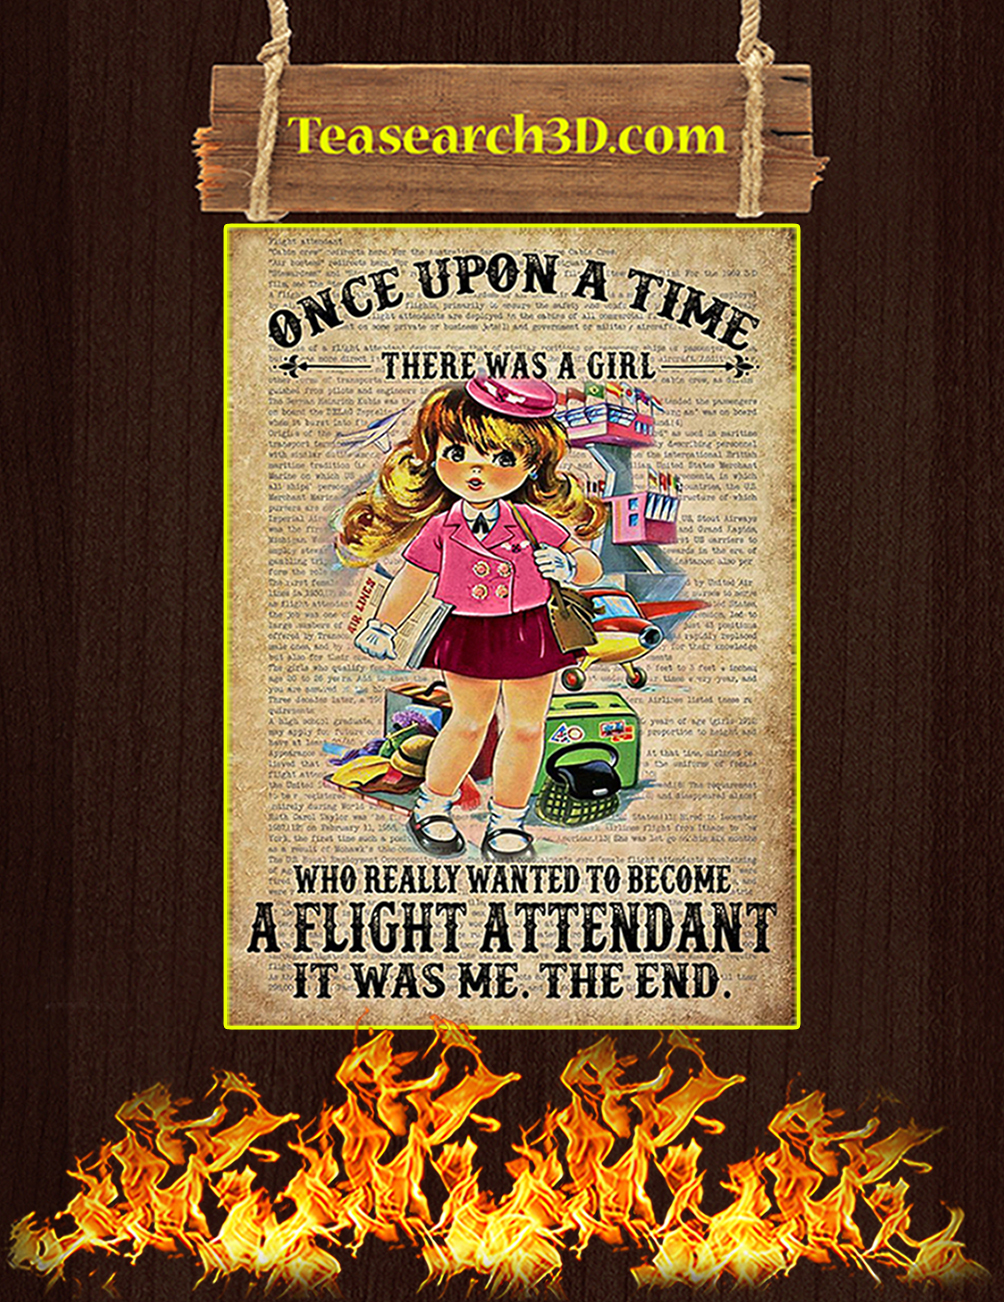 Once upon a time there was a girl who really wanted to become a flight attendant poster 7